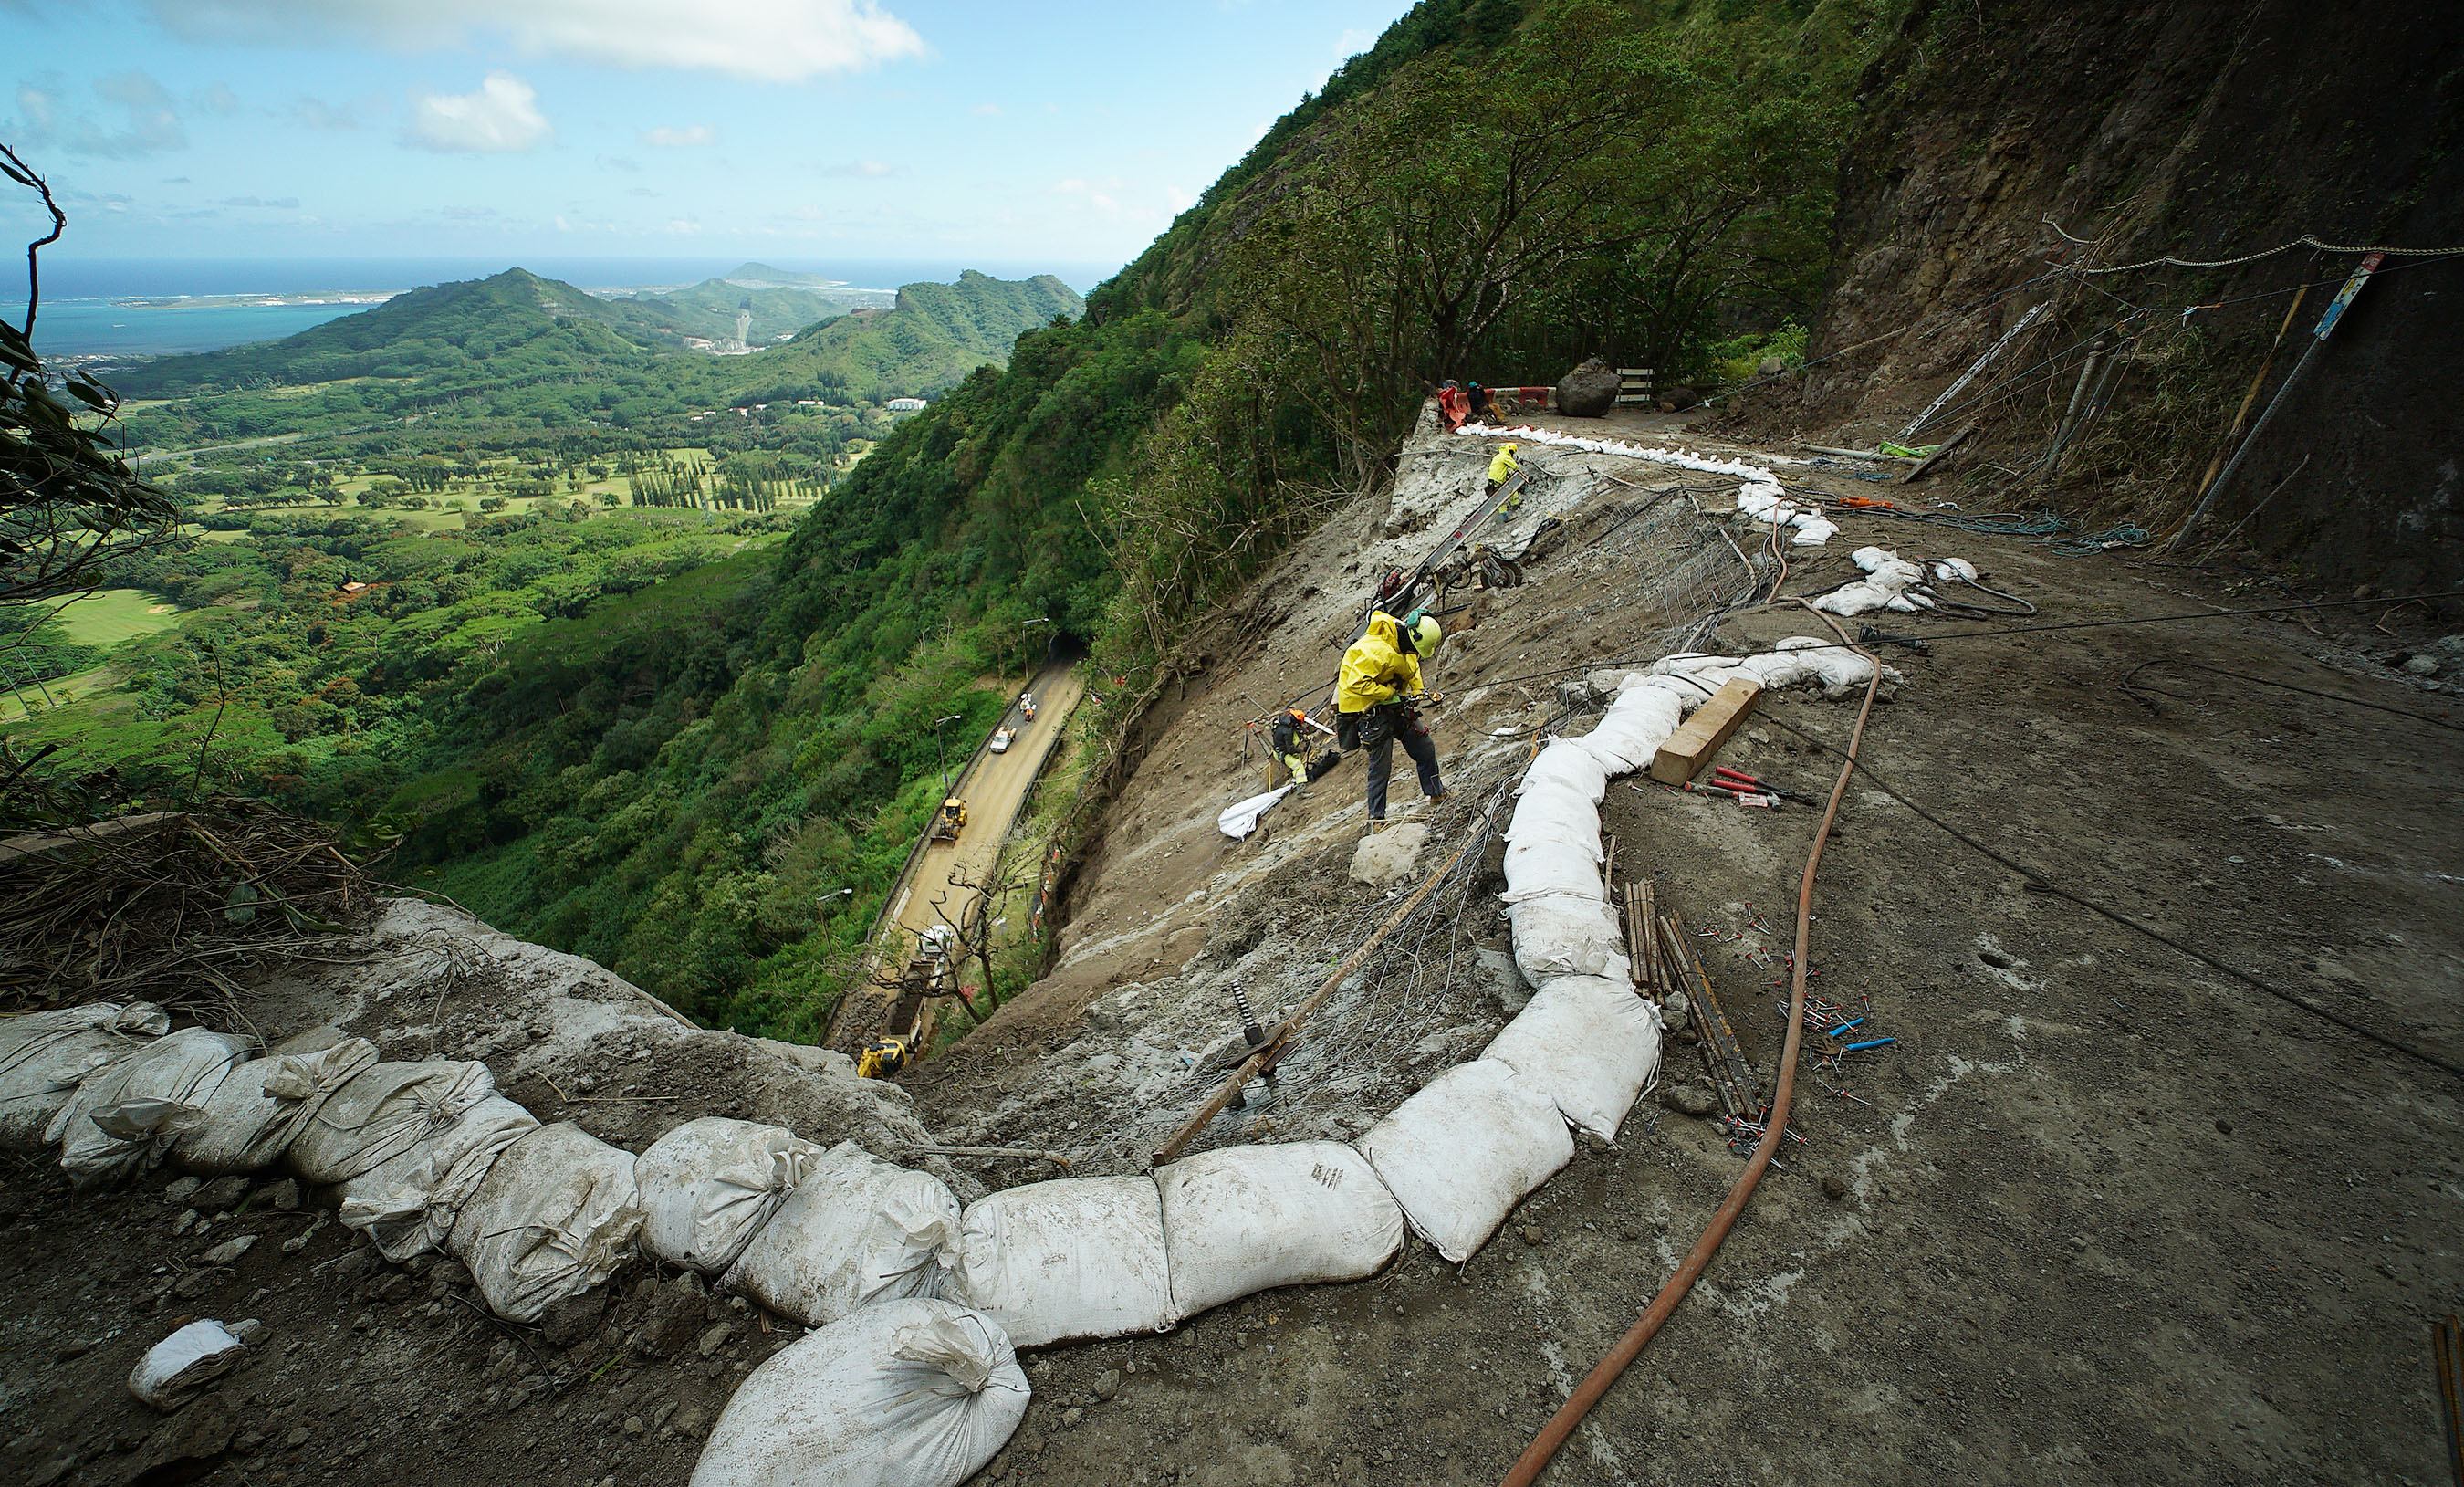 <p>Workers rappel down the damaged slope alongside Old Pali Road with a view of the highway below.</p>